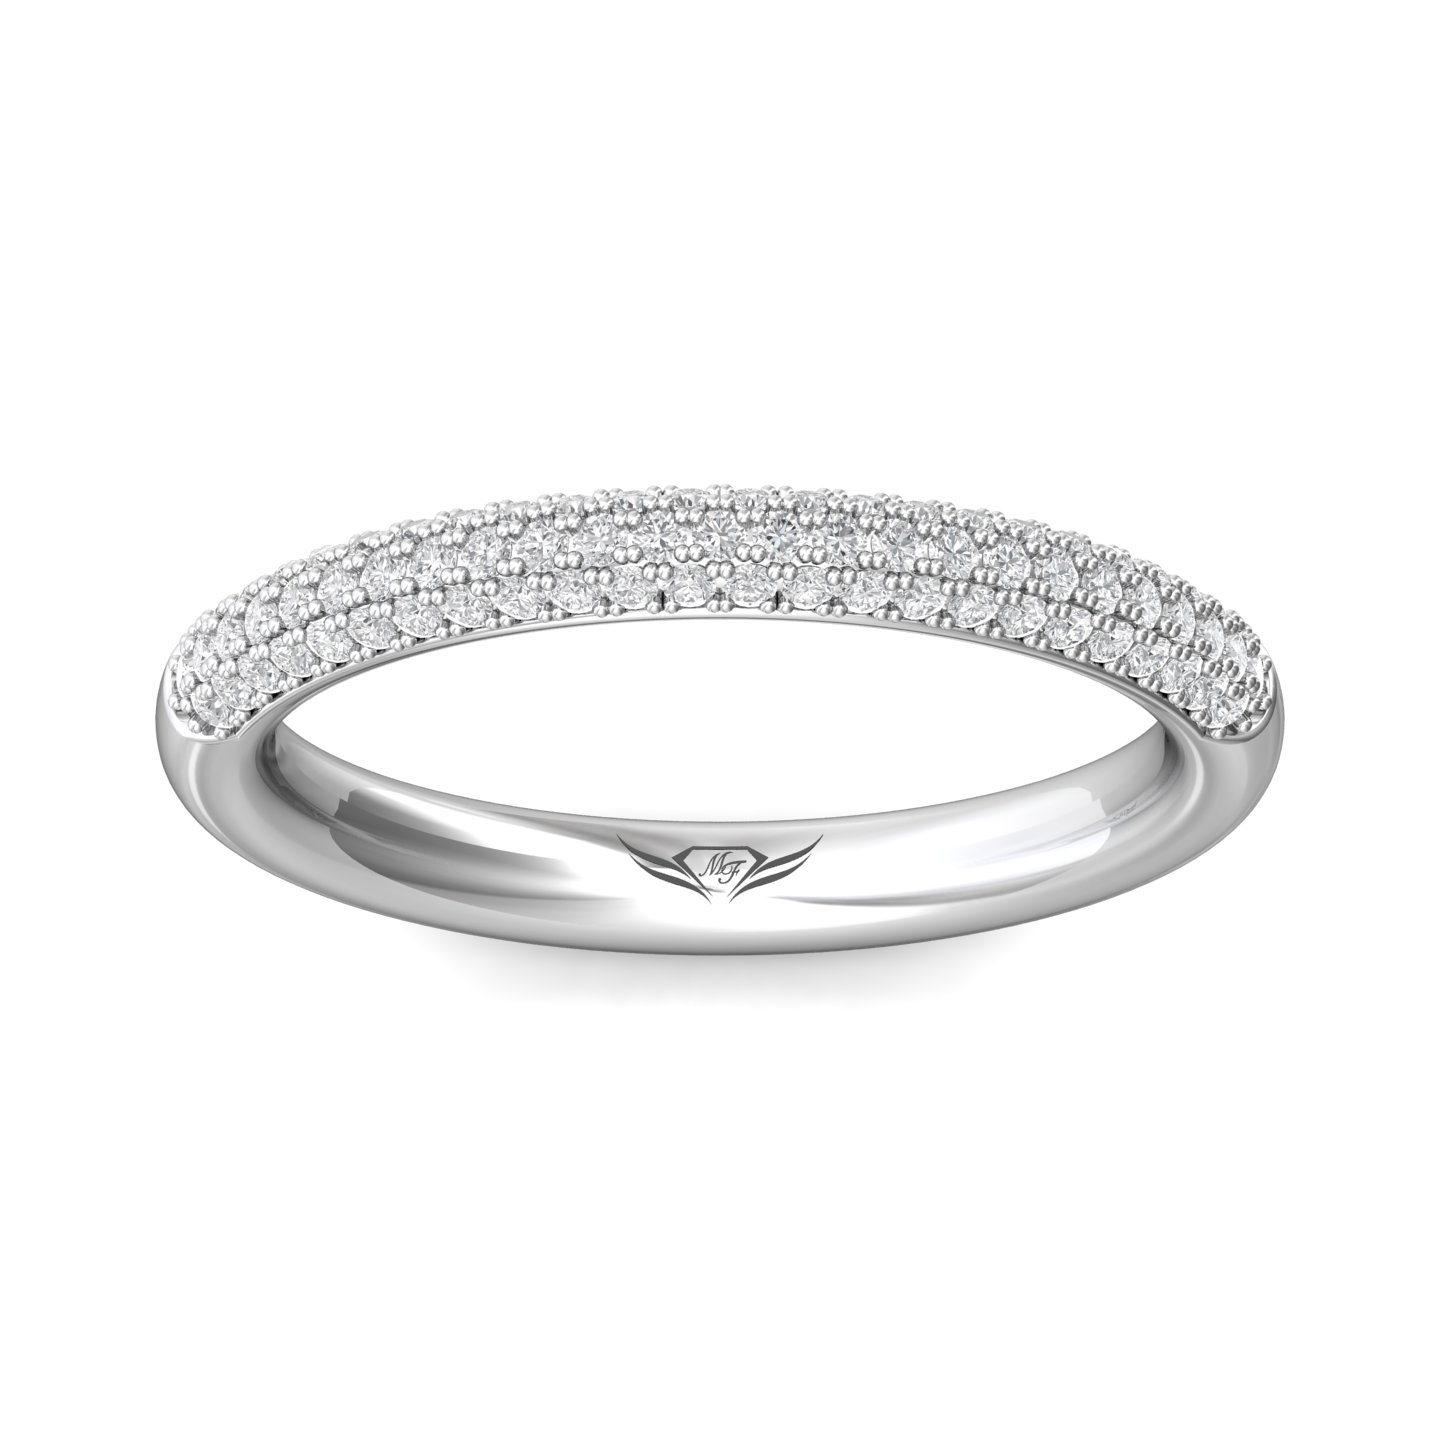 Rings - 14K White Gold FlyerFit Micropave Wedding Band - image #3